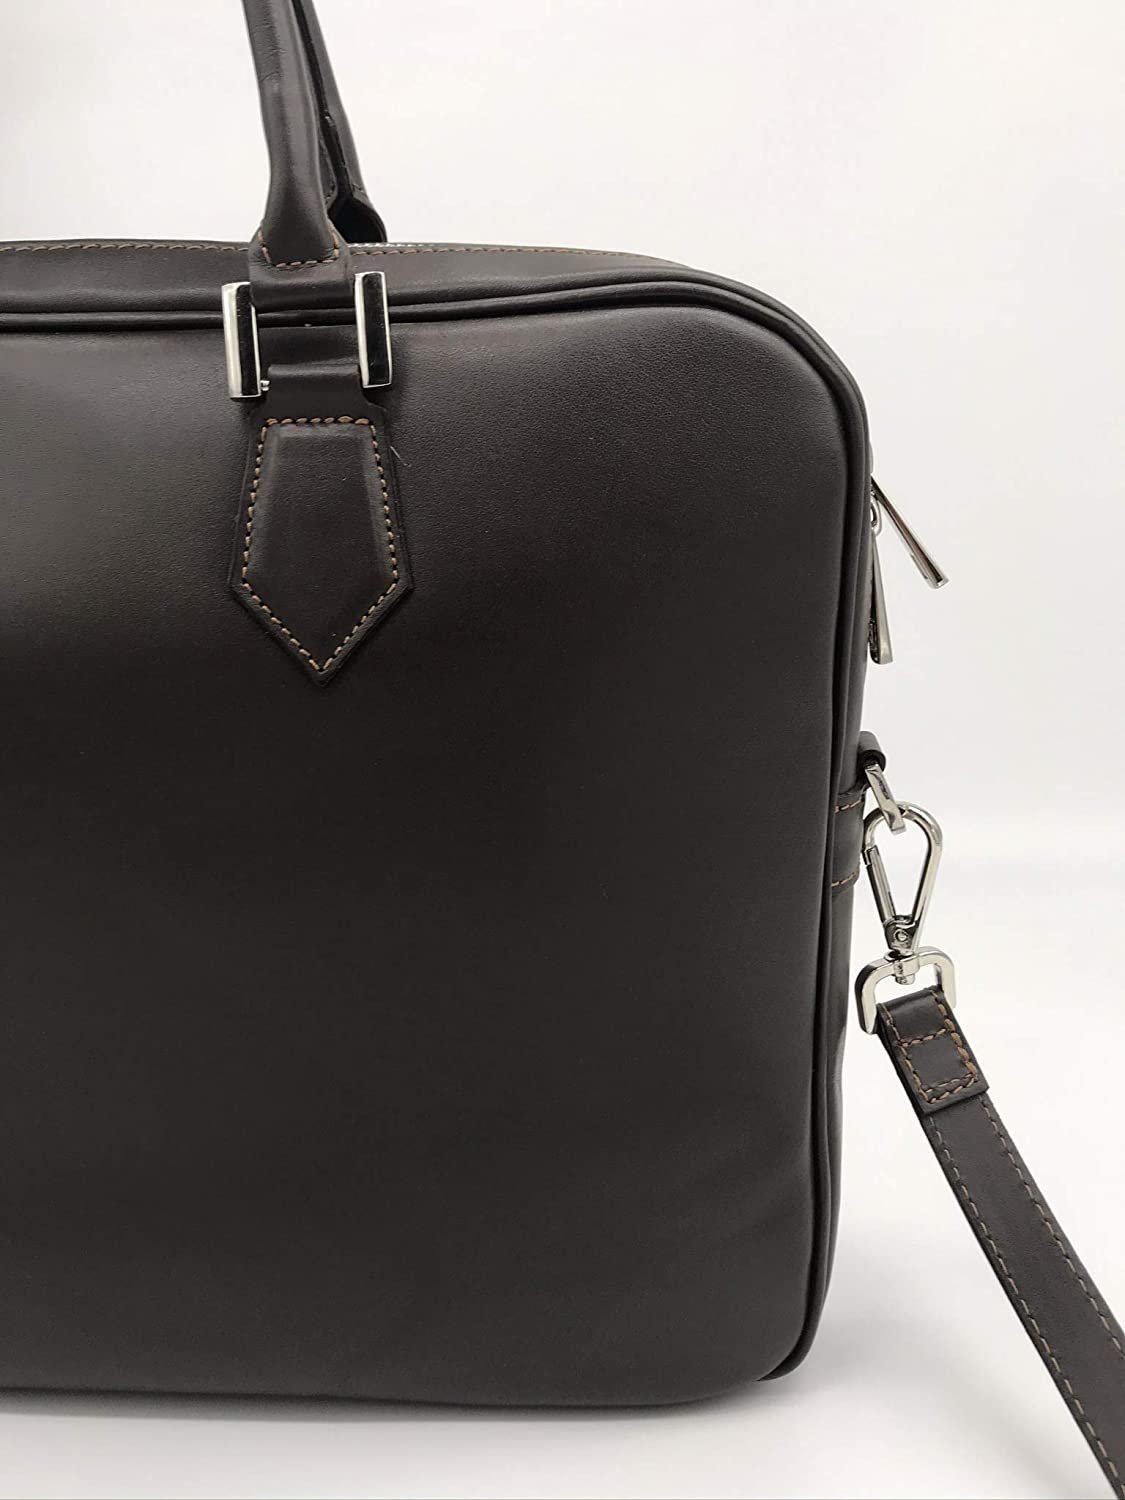 Francesco Lionetti - Borsa Business Messenger in Pelle - Made in Italy (Cuoio Aranciato) Nero Saffiano